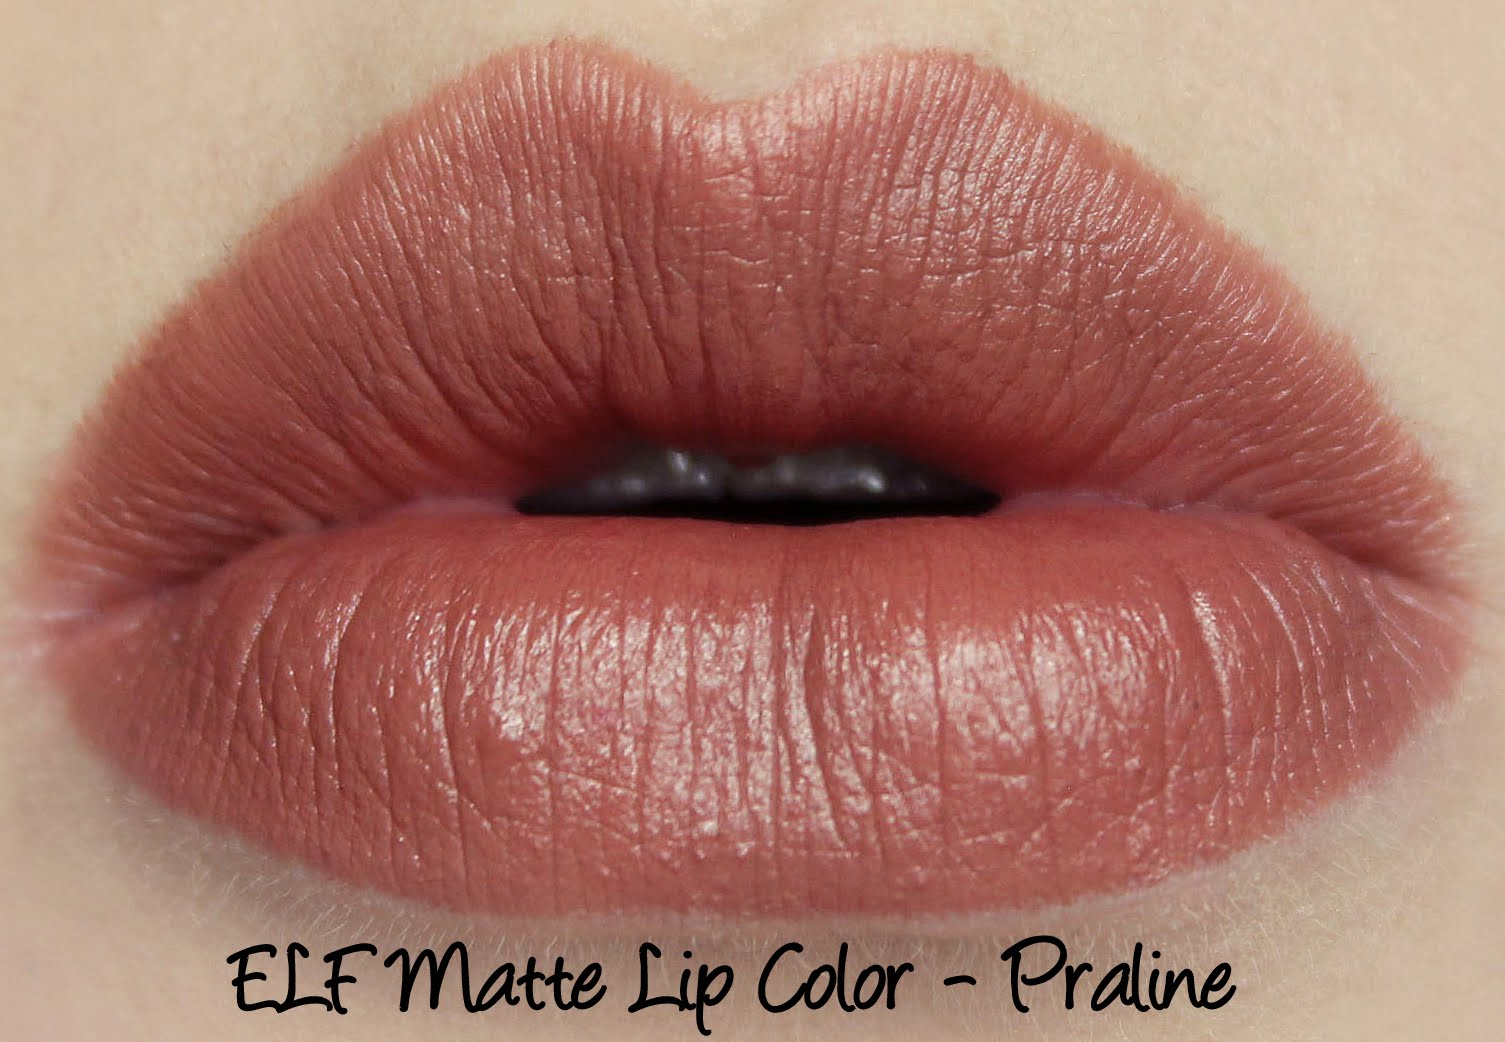 Elf Matte Lip Color